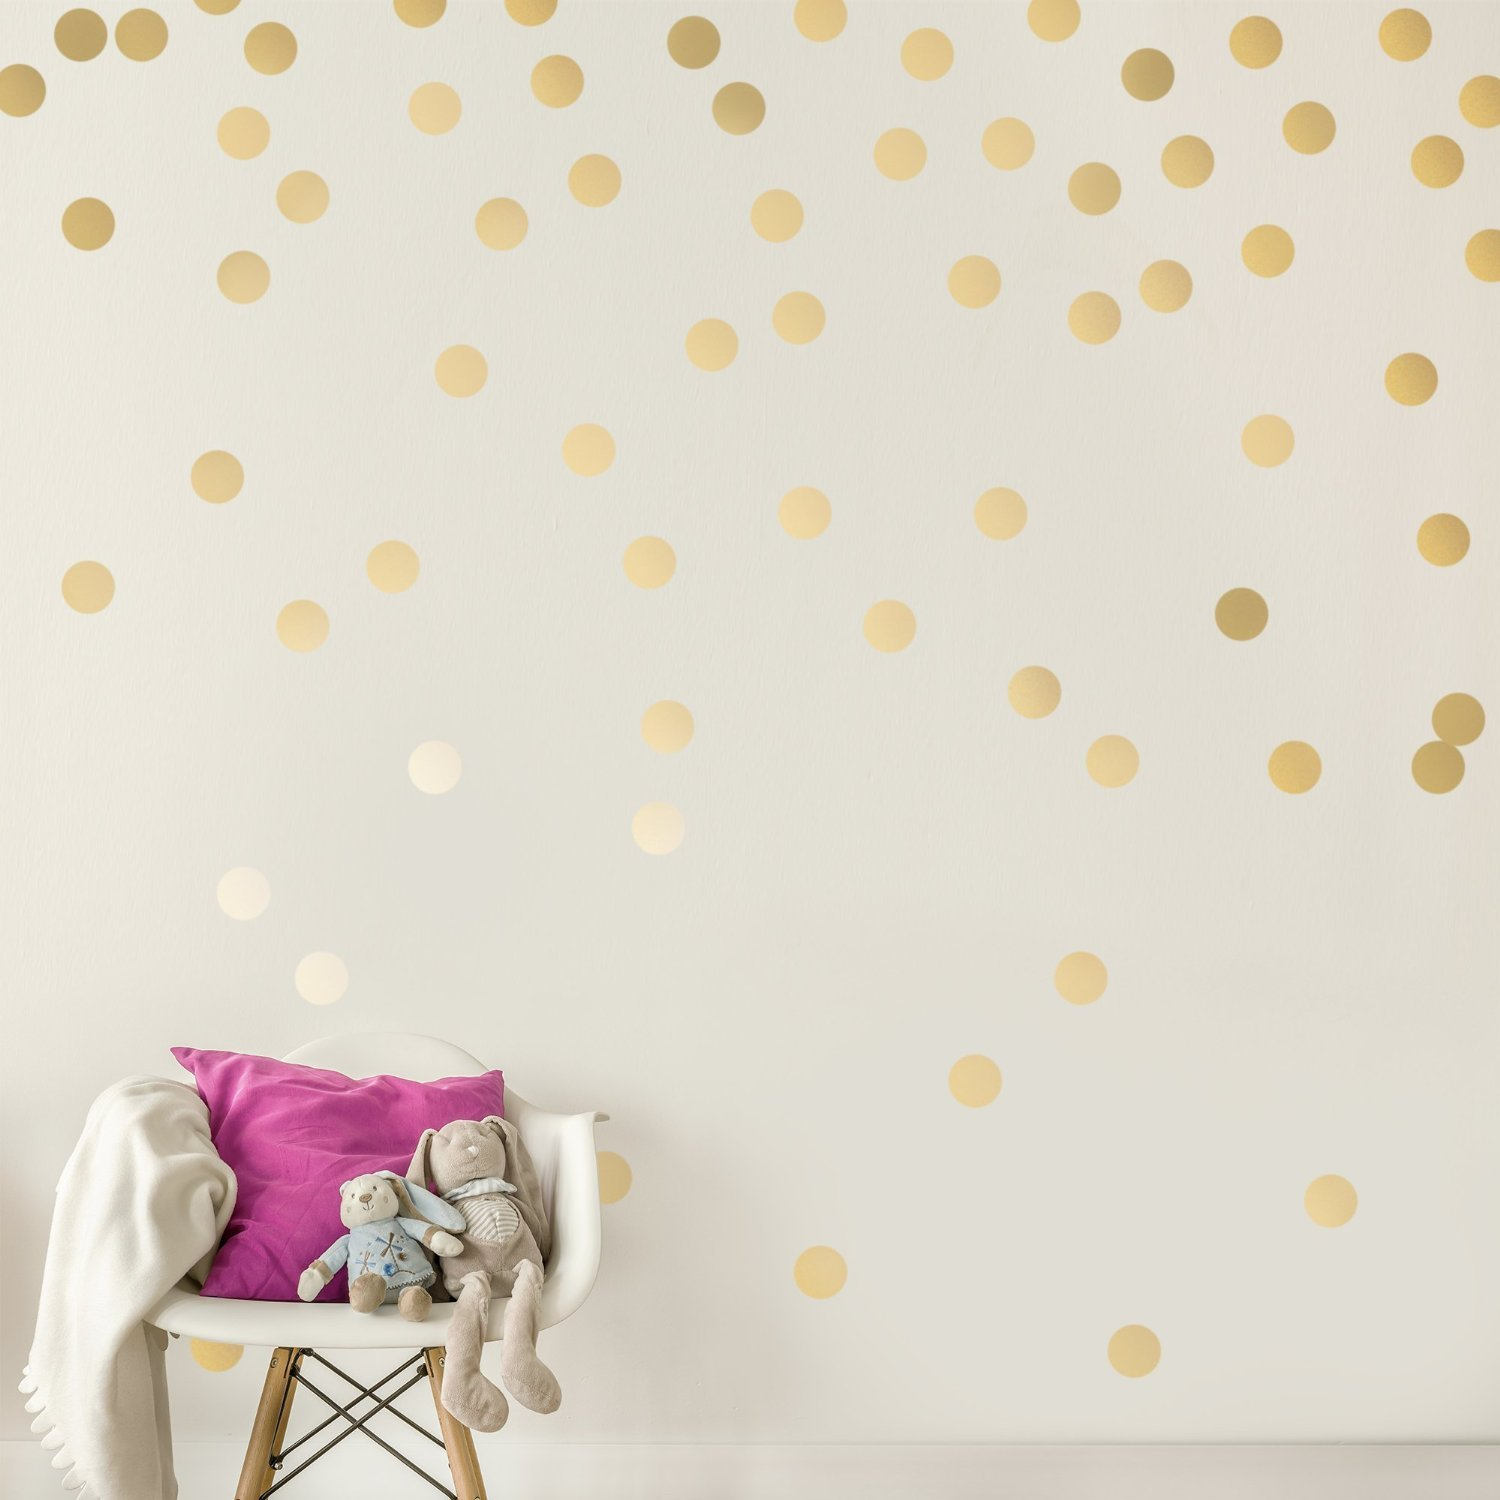 Painting walls ideas wall decals - Gold Wall Decal Dots 200 Decals Easy Peel Stick Safe On